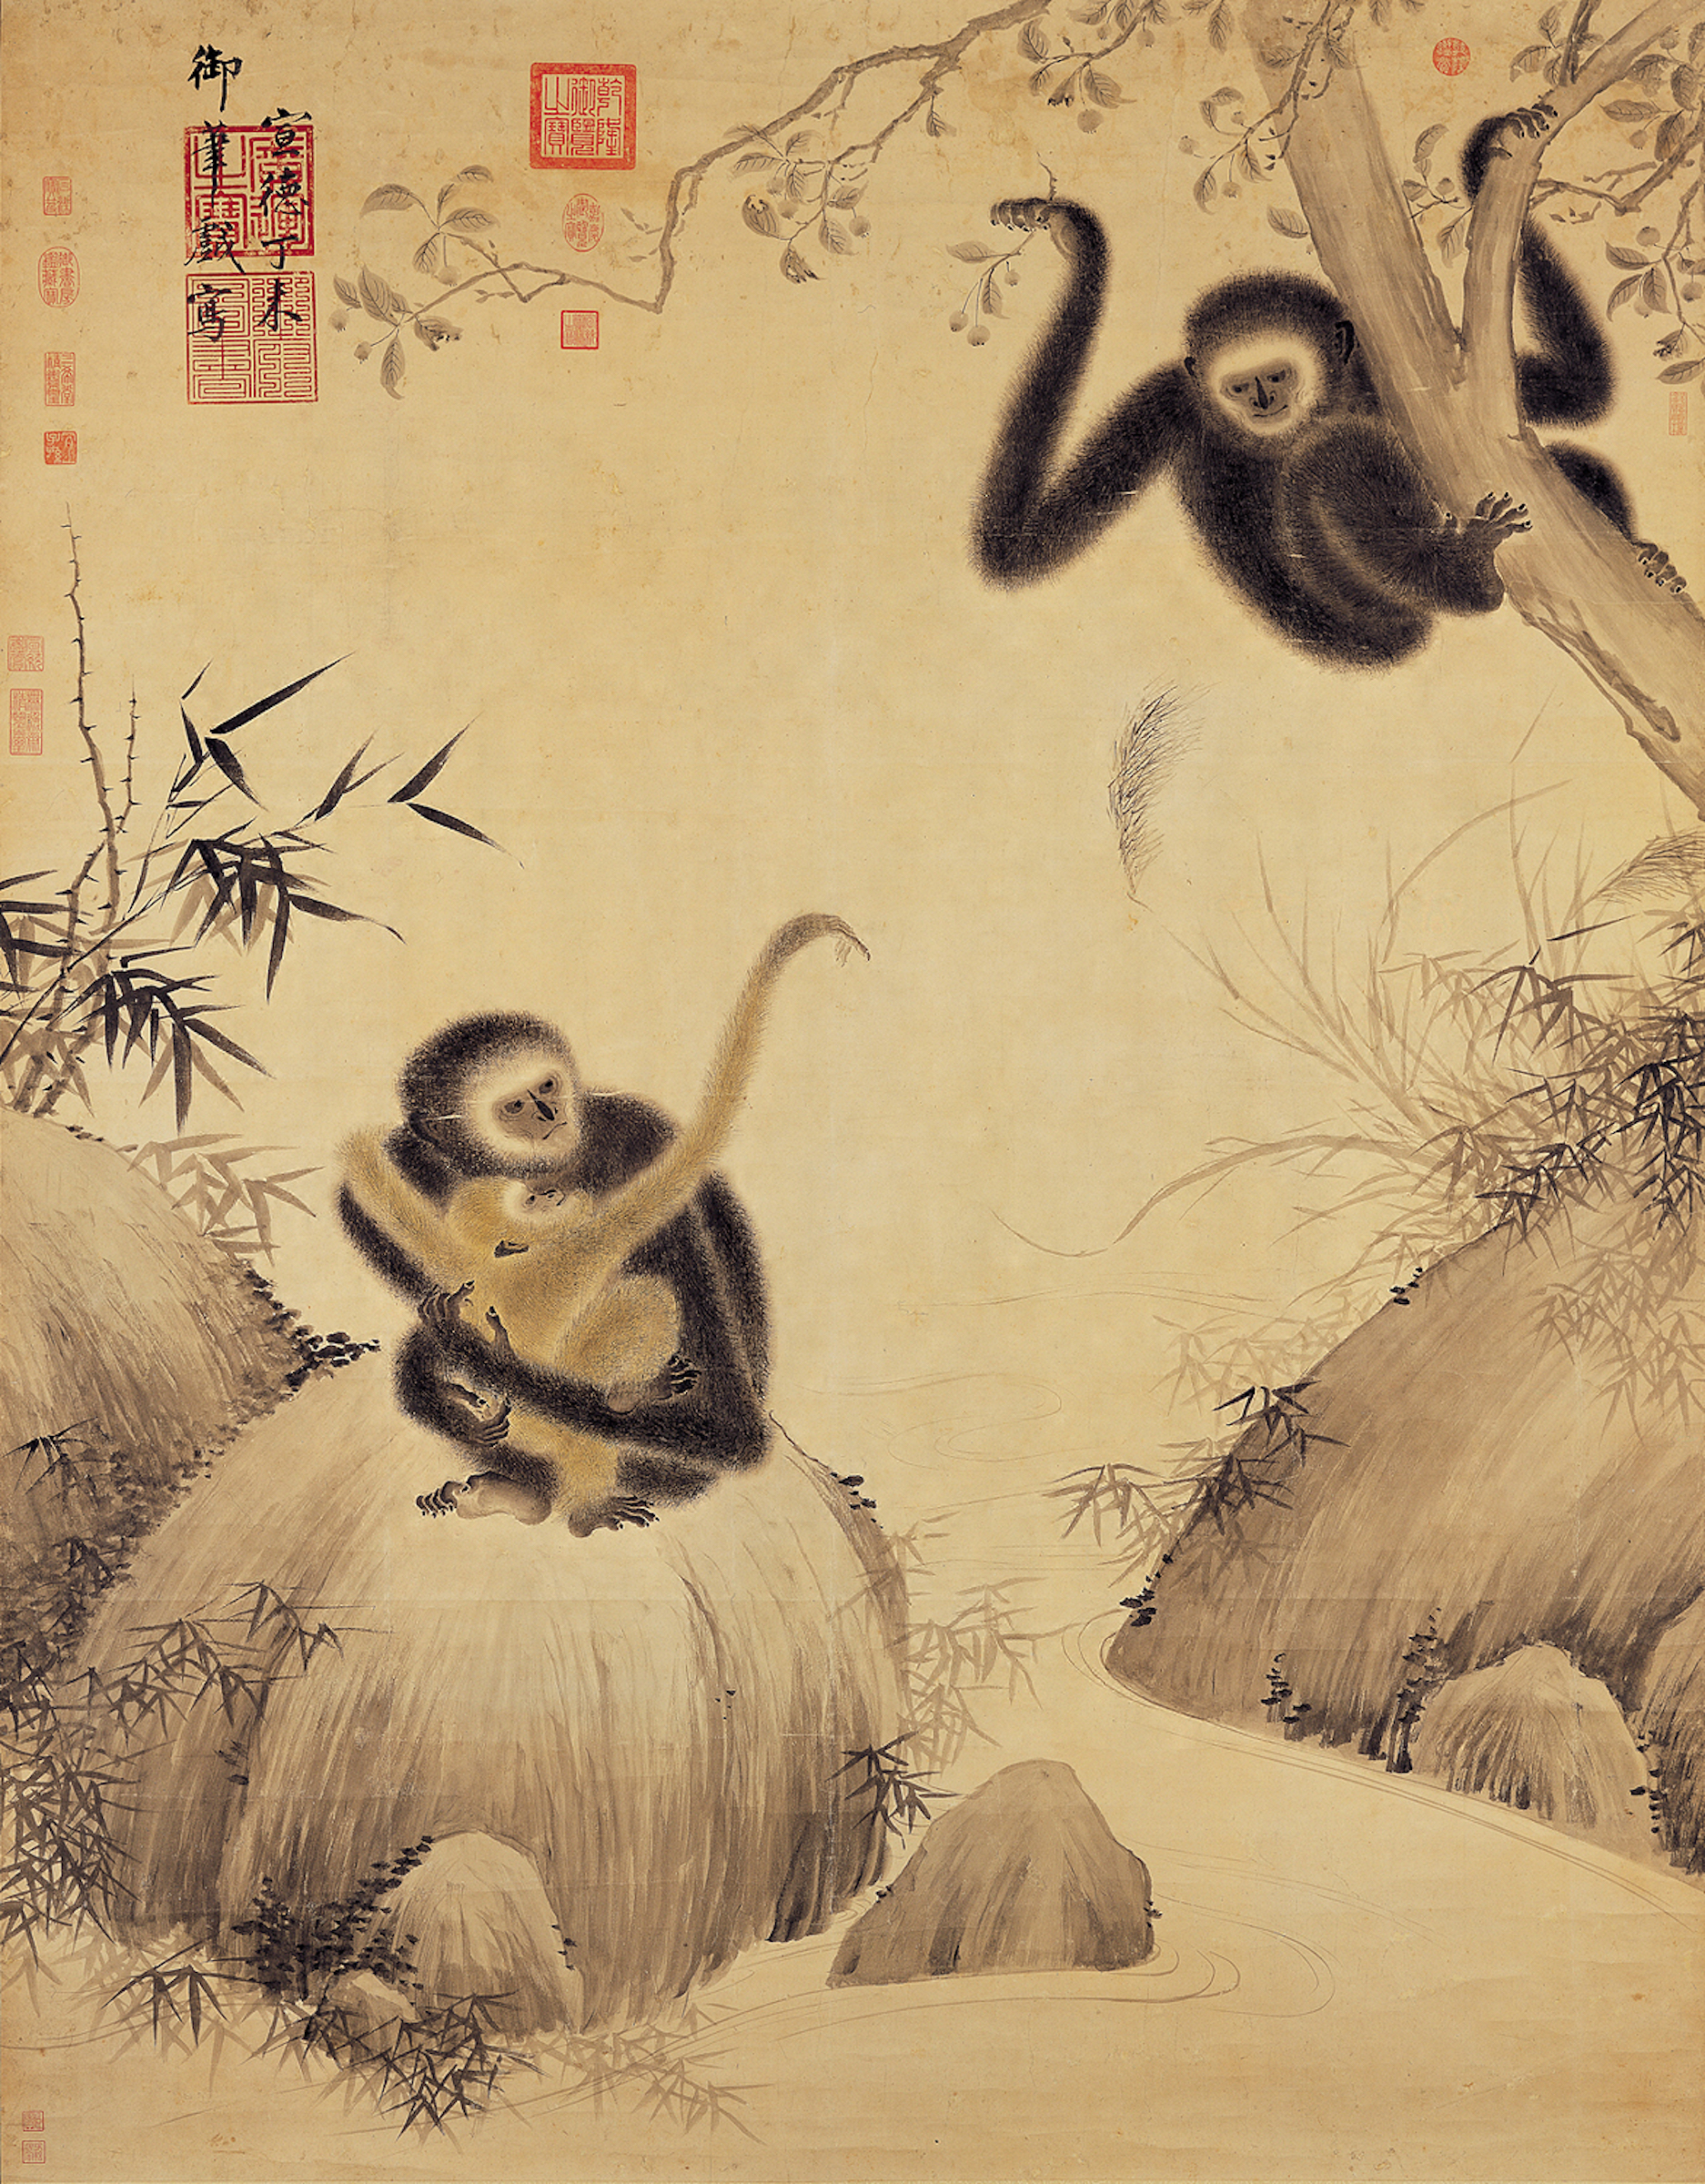 A painting of three gibbons attributed to Ming dynasty emperor Zhu Zhuanji (ca. 1399-1435). Image courtesy of the National Palace Museum